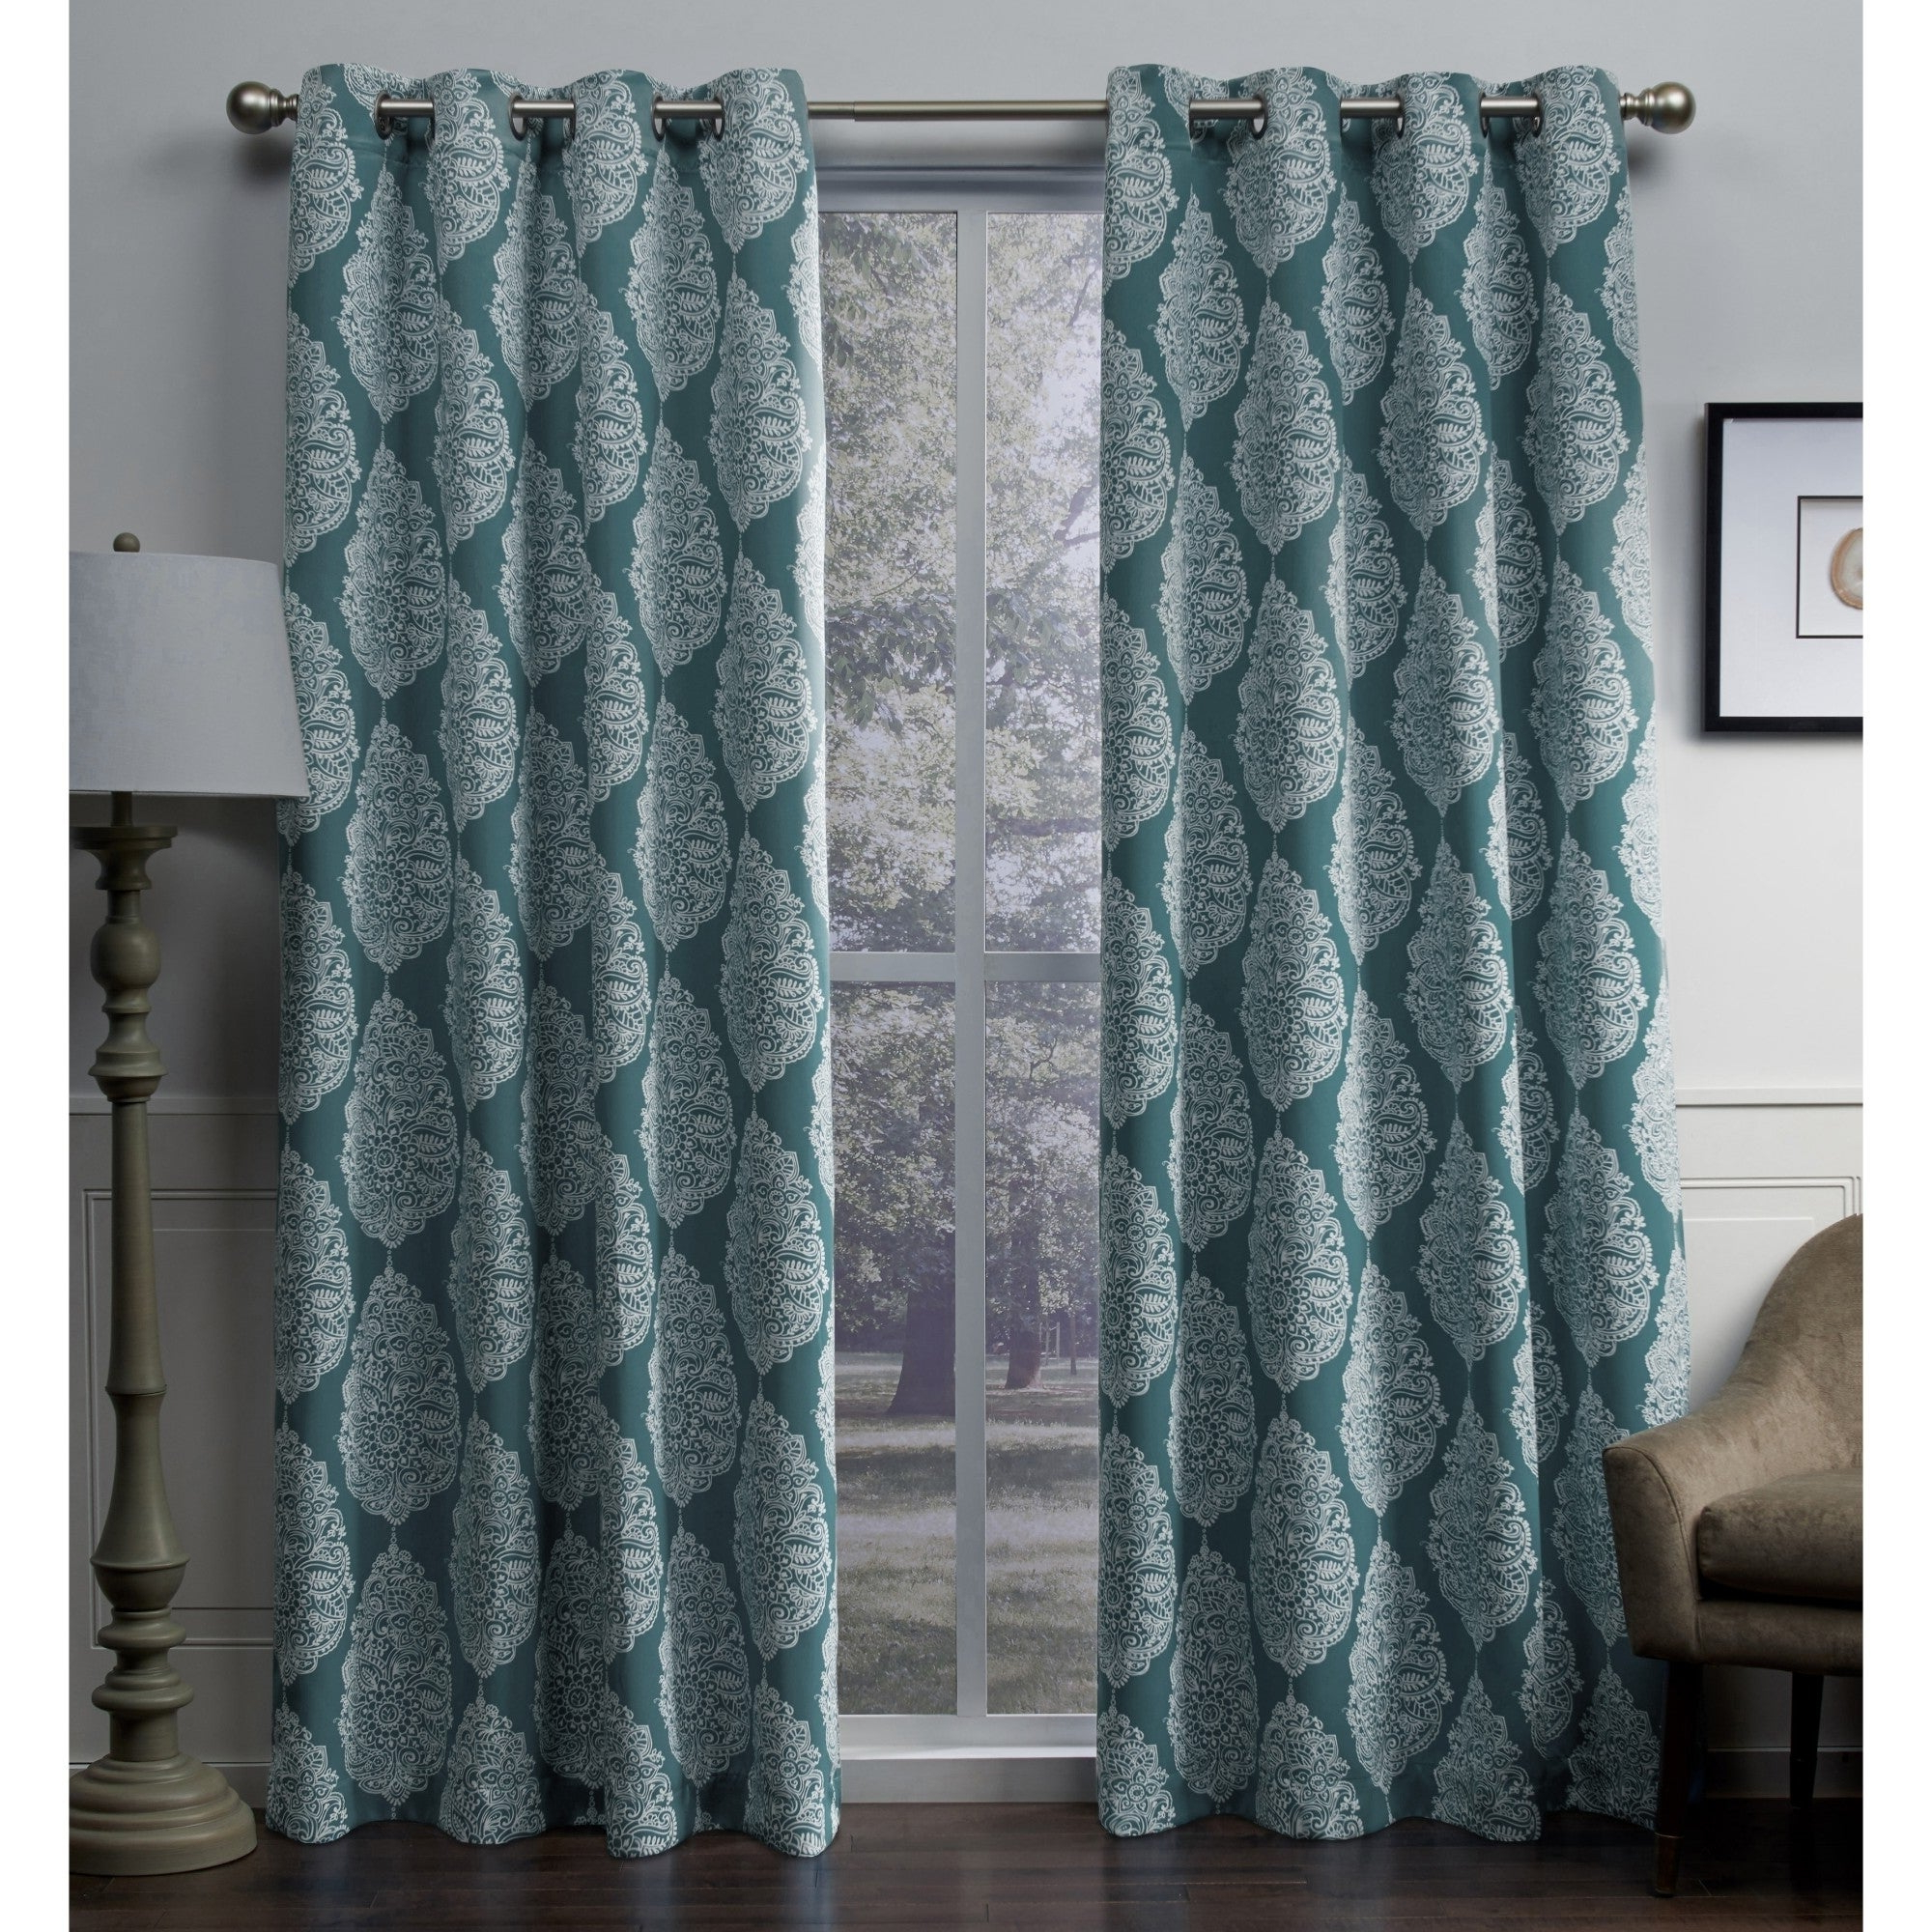 Details About Ati Home Queensland Sateen Blackout Grommet Top Curtain Pertaining To Newest Oxford Sateen Woven Blackout Grommet Top Curtain Panel Pairs (View 4 of 20)